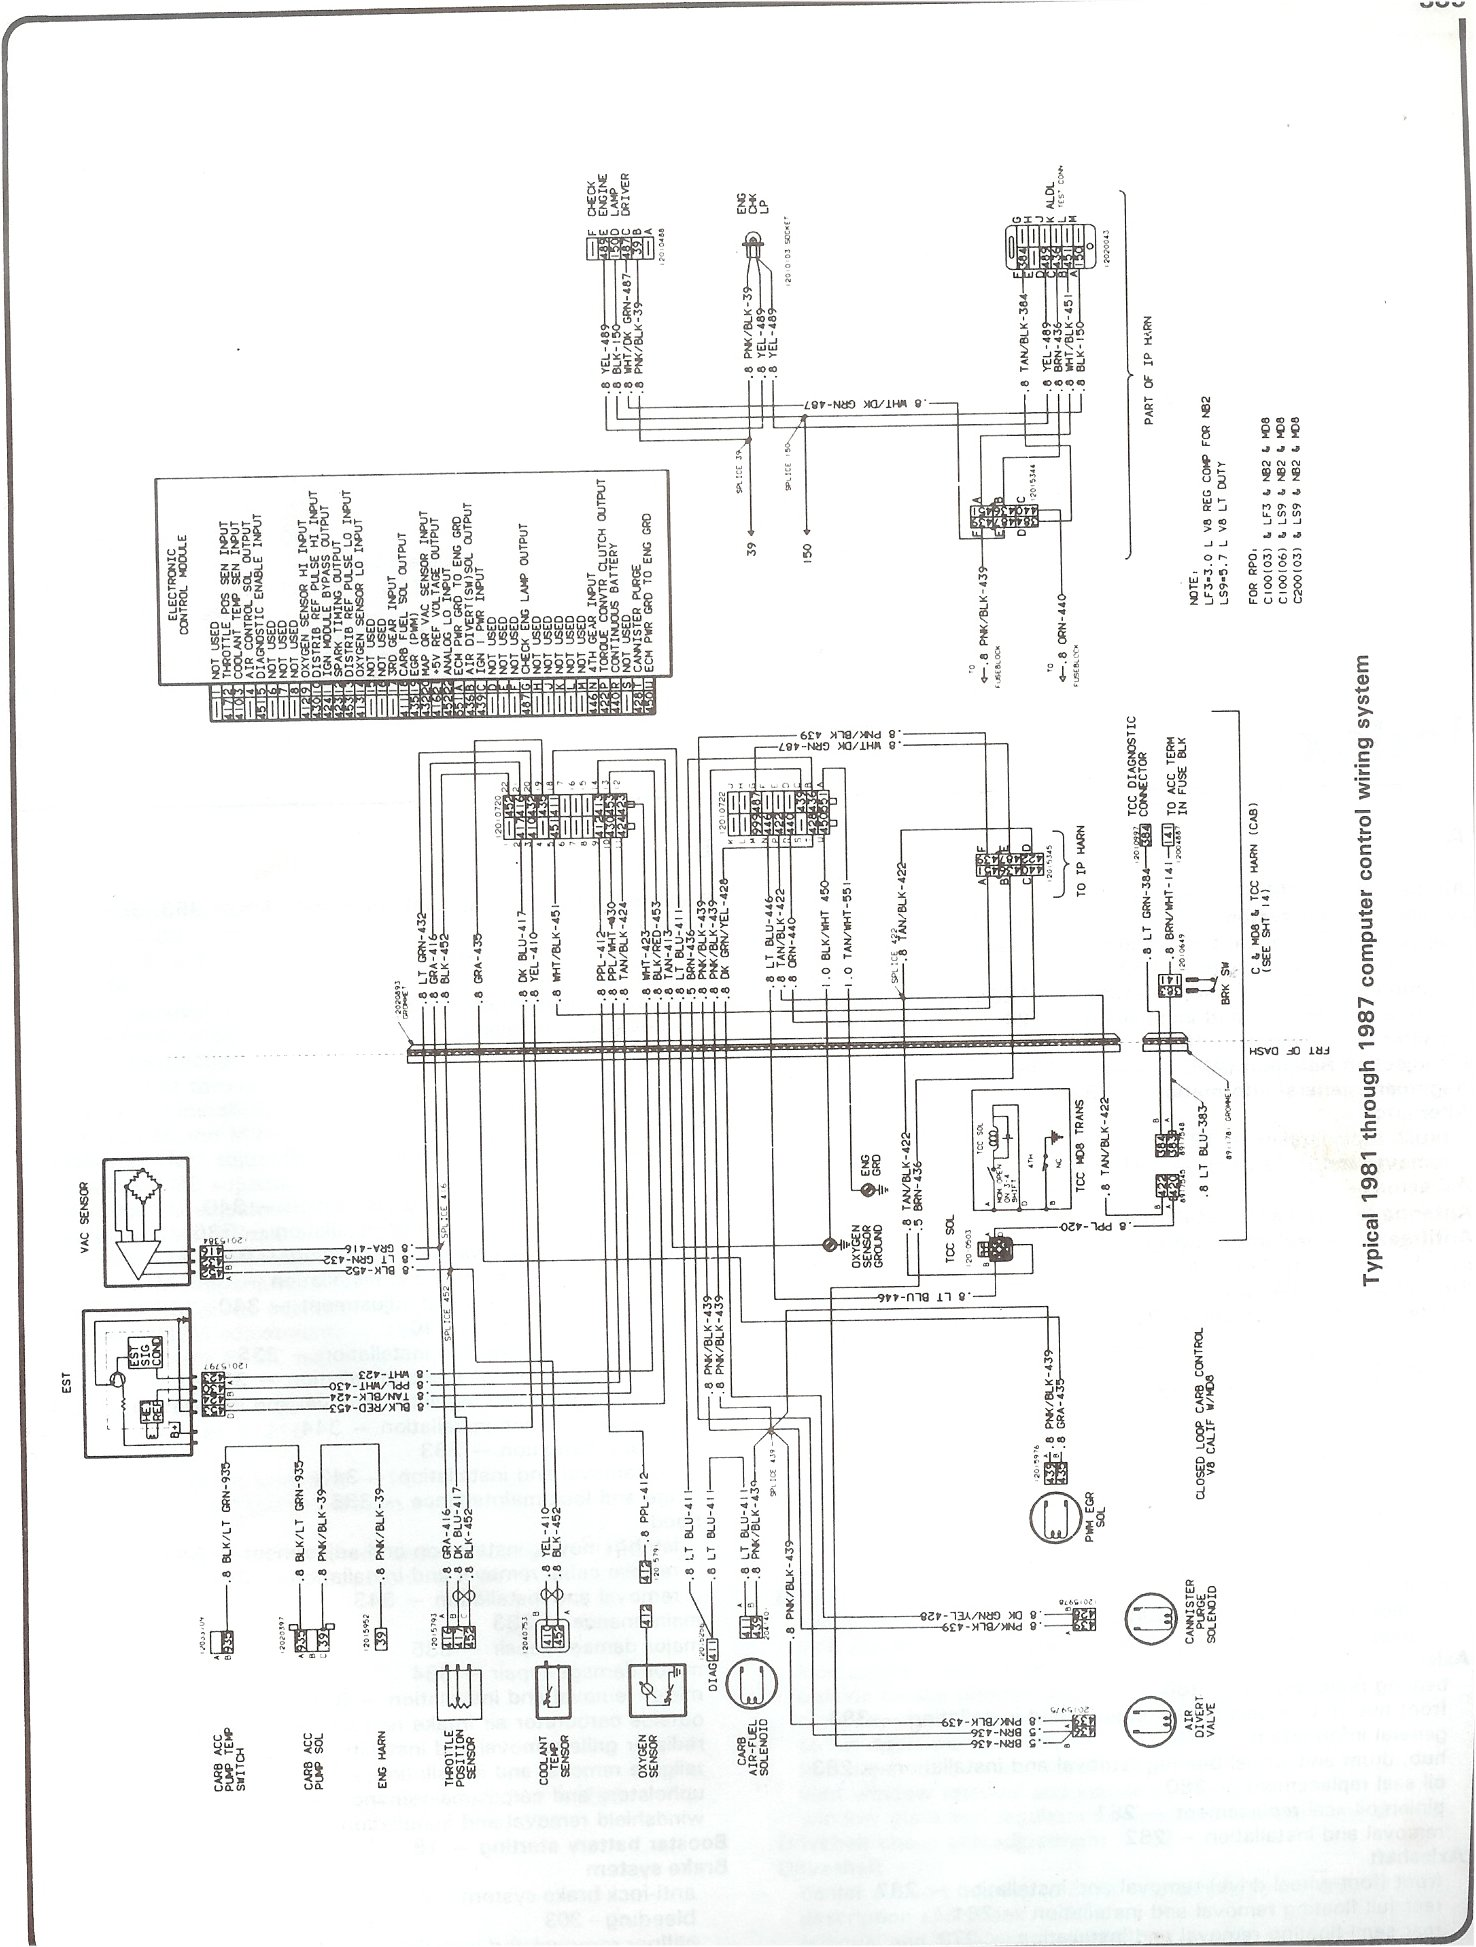 81 87_computer_control_wiring complete 73 87 wiring diagrams 1977 chevy truck wiring diagram at edmiracle.co